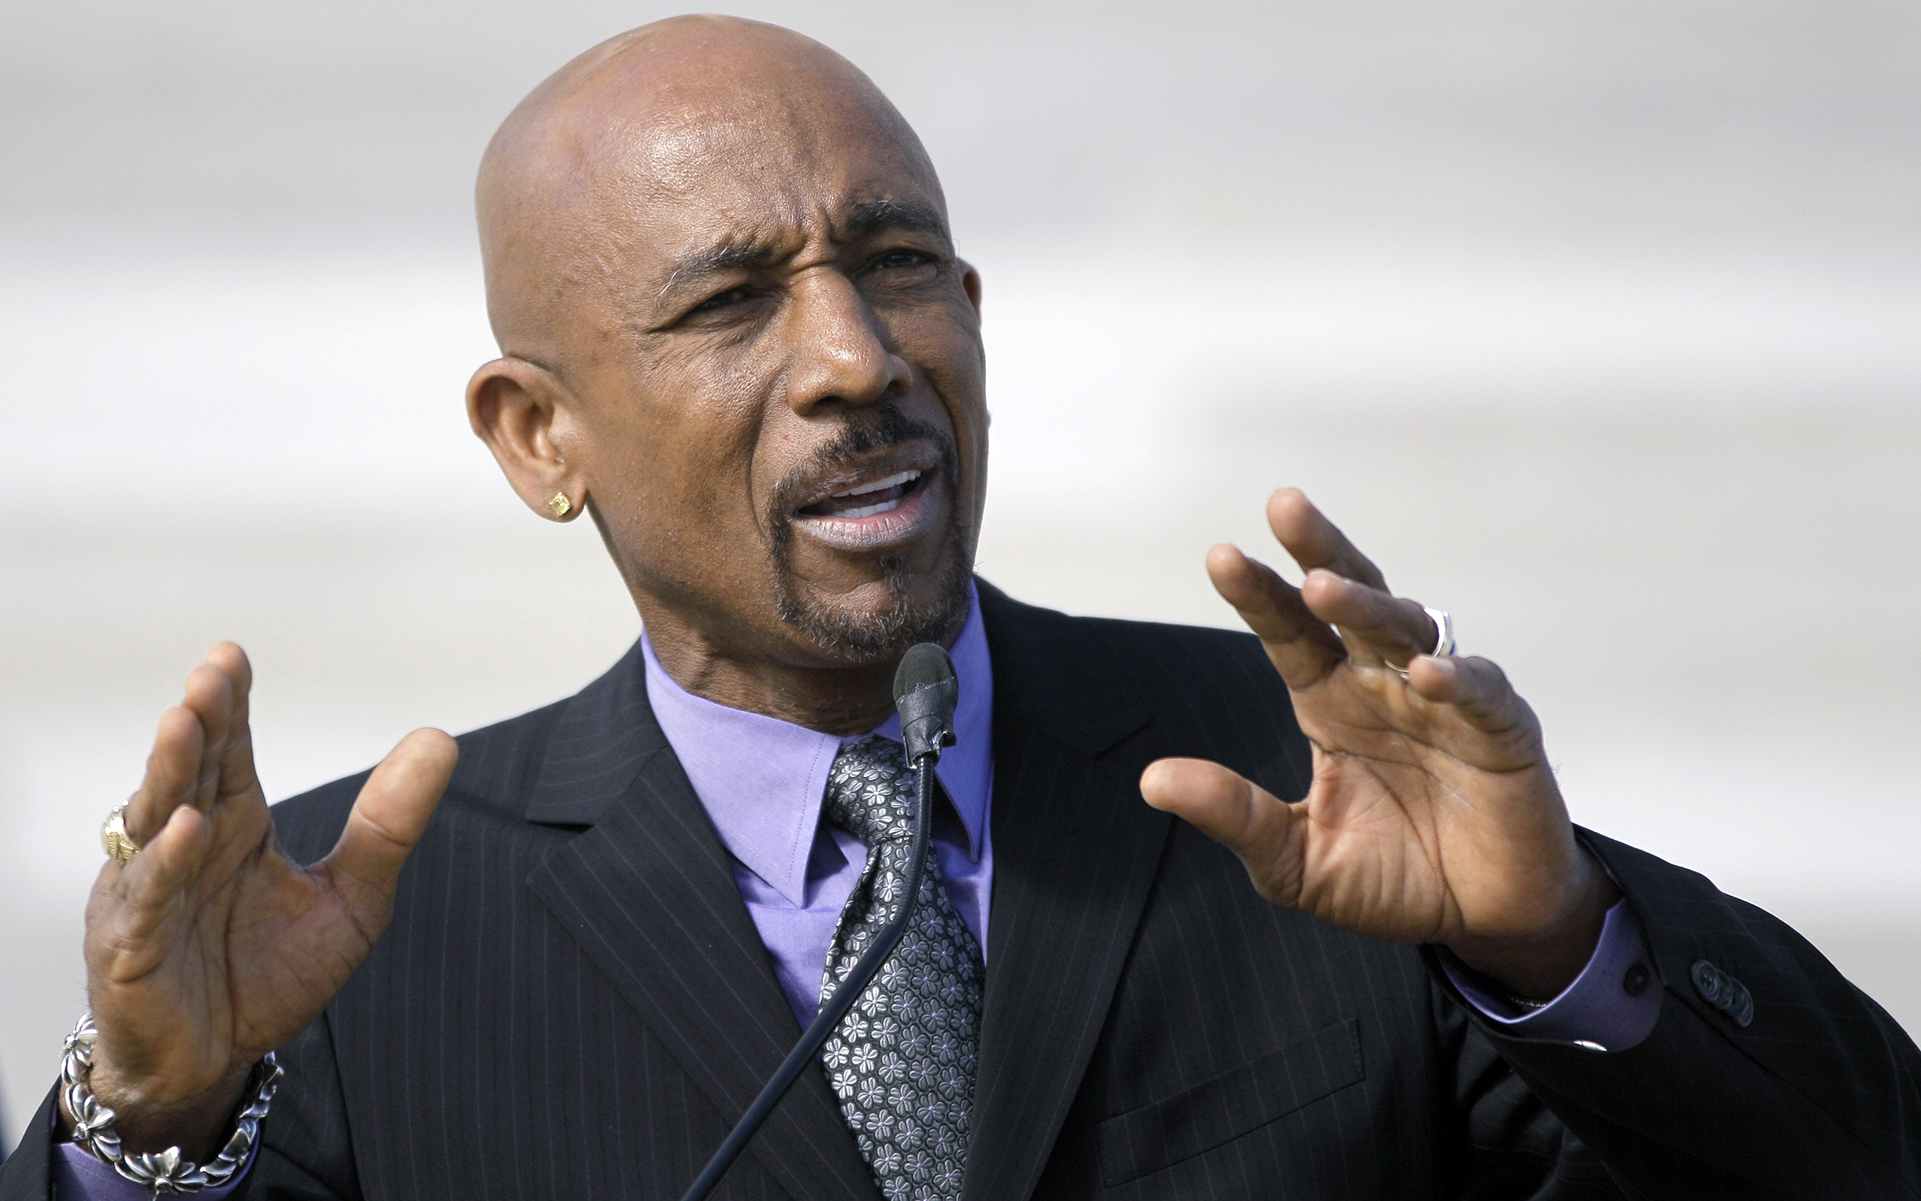 'This Trail Was Blazed by Patients': An Interview With Cannabis Advocate Montel Williams